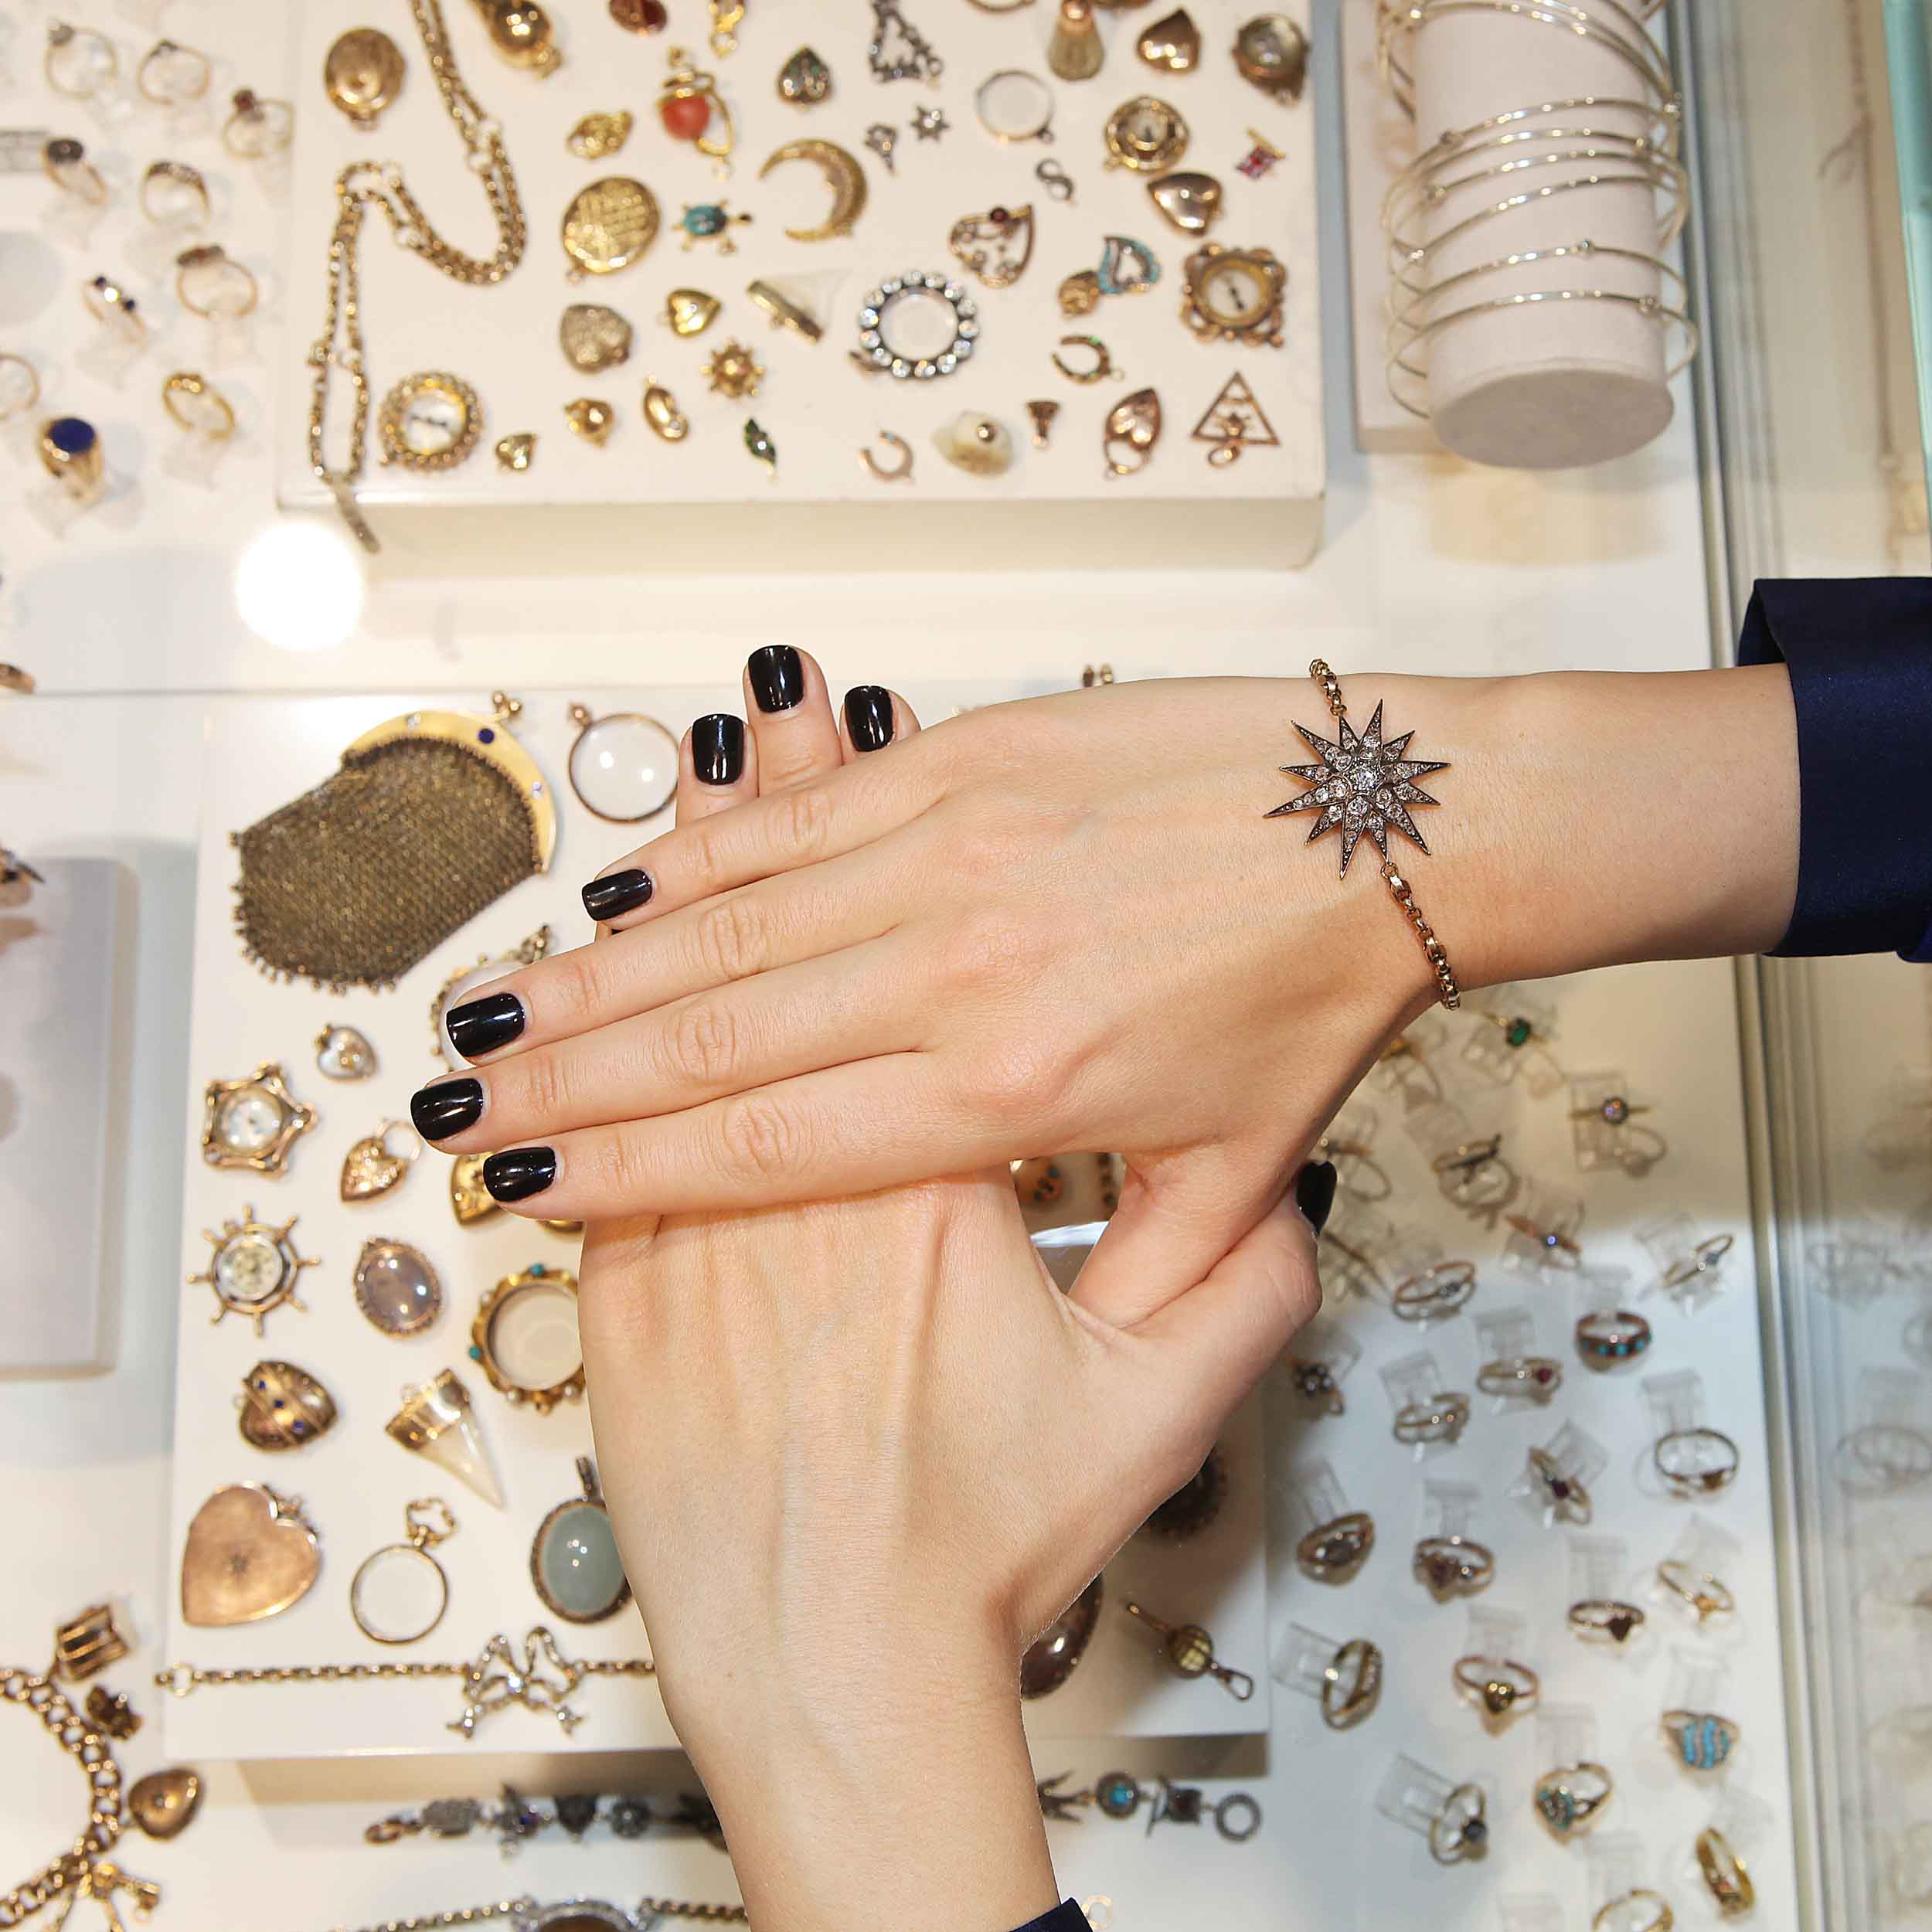 ANNINA VOGEL JEWELRY DESIGNER OF THE MONTH LIBERTY LONDON GEMOLOGUE